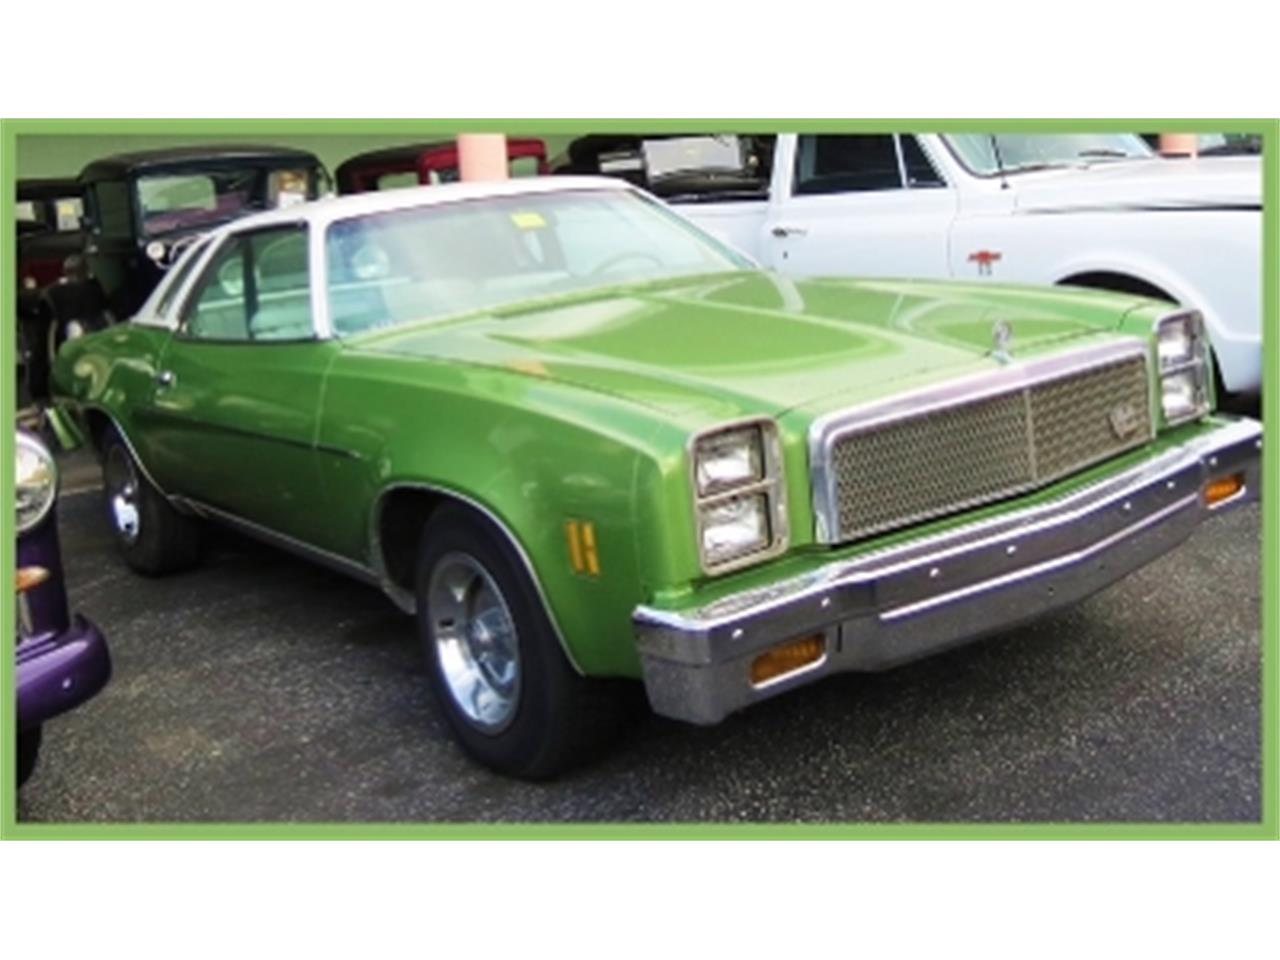 Large Picture of '76 Chevelle - $16,500.00 - E2M3